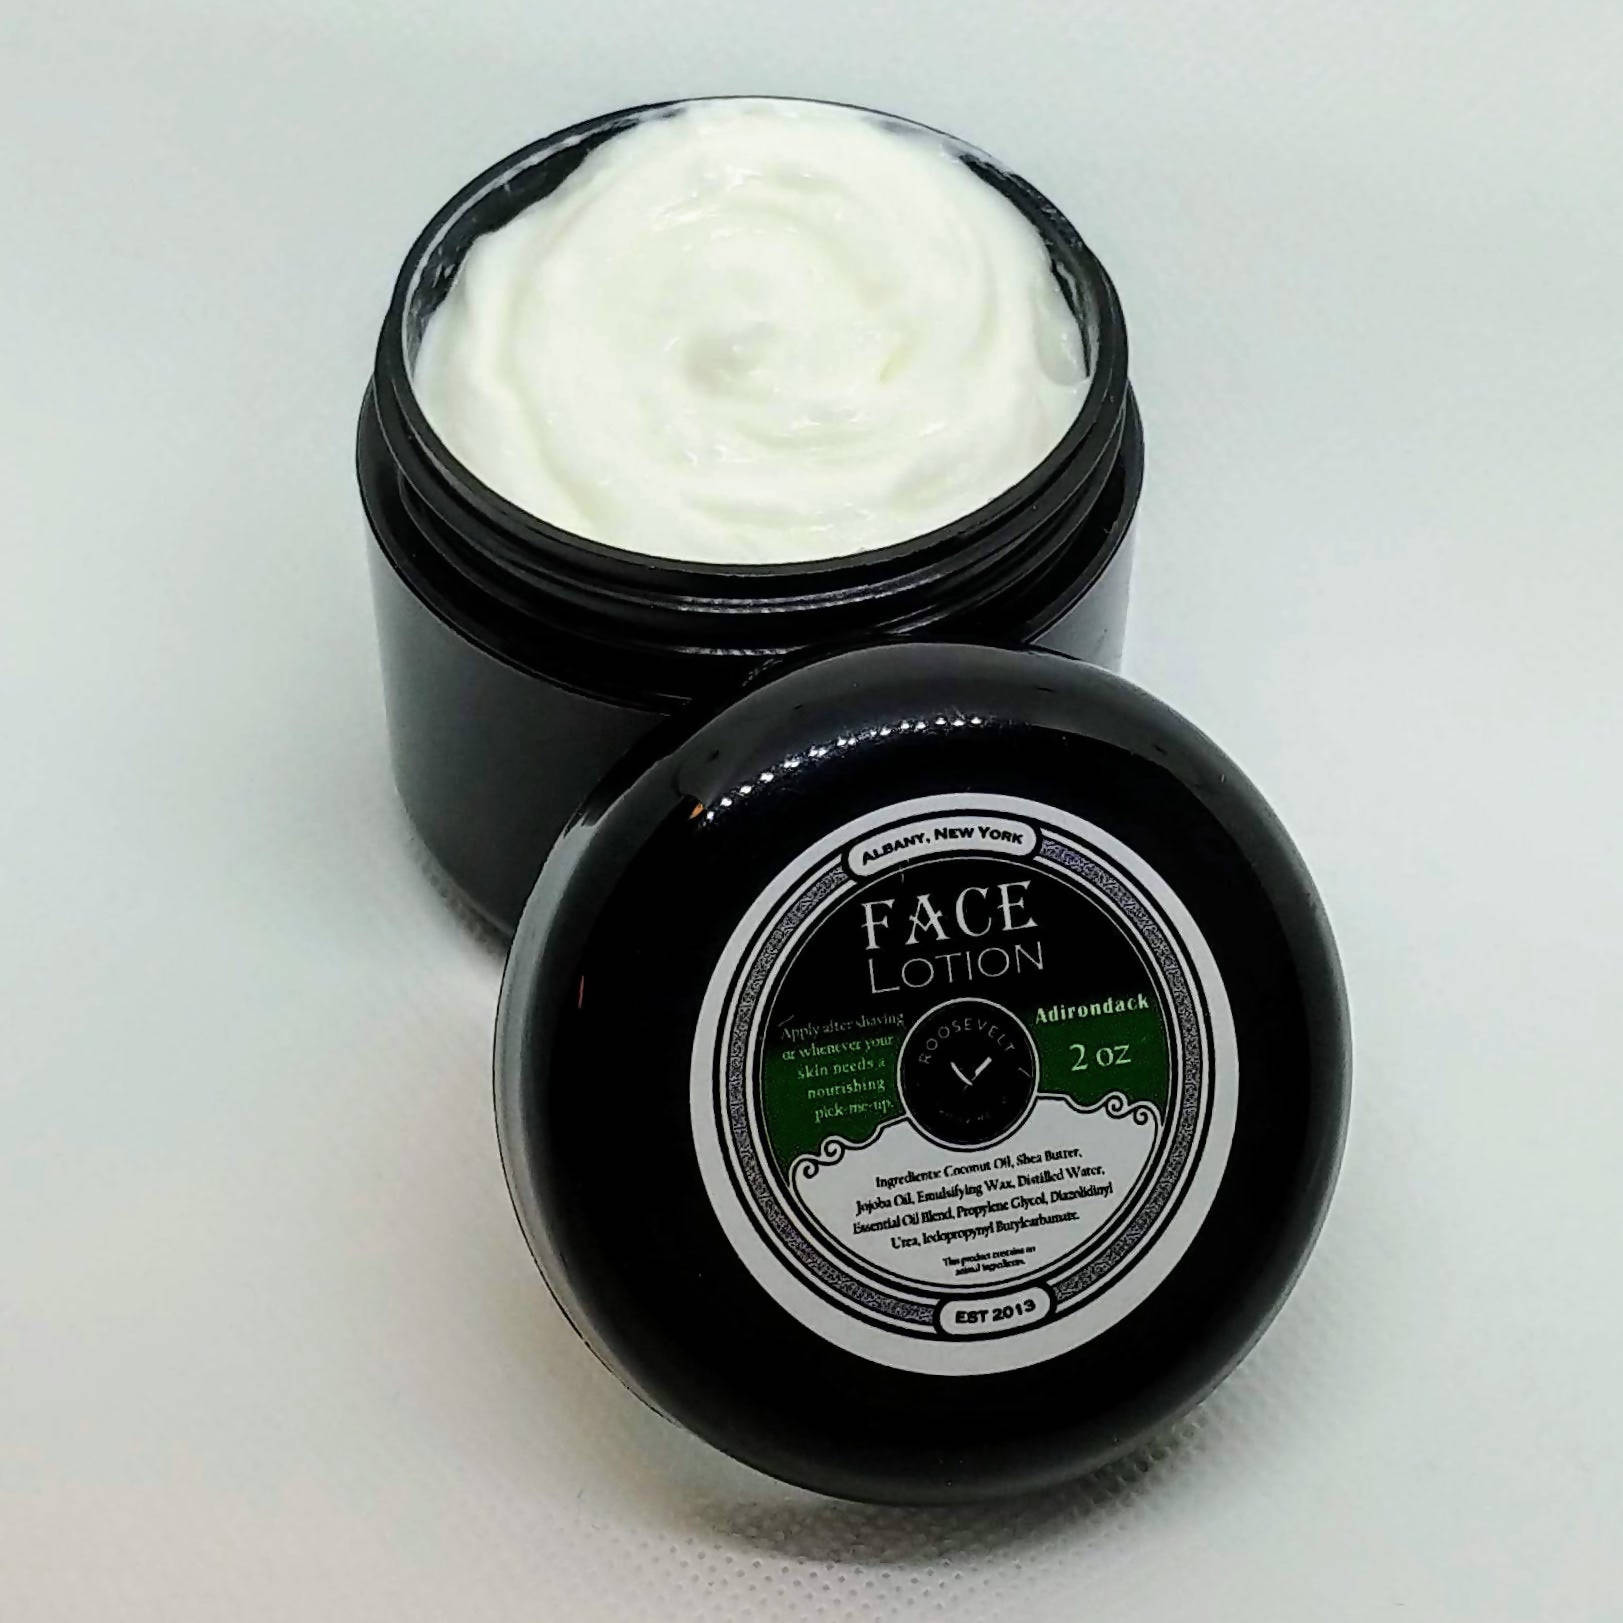 Creamy and Soothing Handcrafted Men's Face Lotion - 1oz, 2oz or 4oz - Refines, Protects, Smooths, Moisturizes